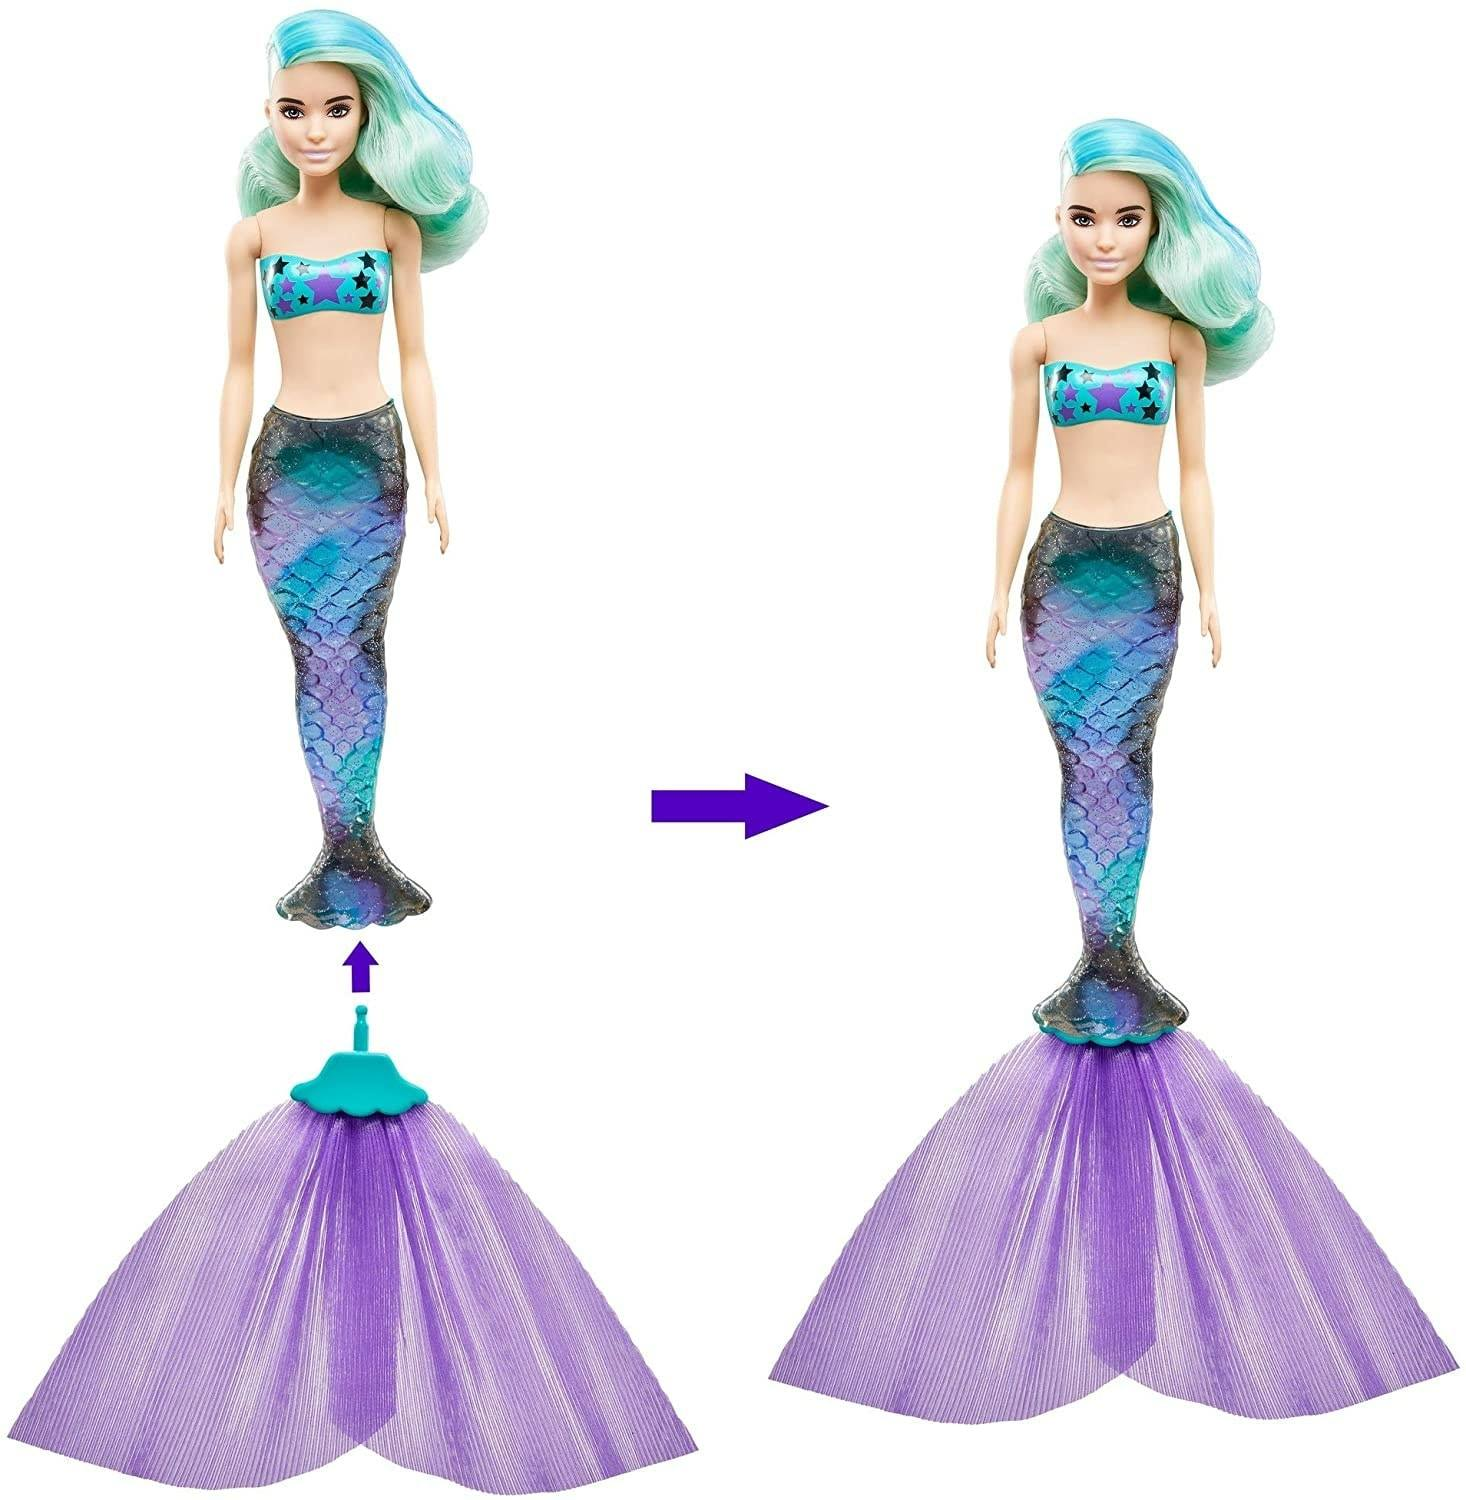 Color Reveal Mermaid Barbie dolls price